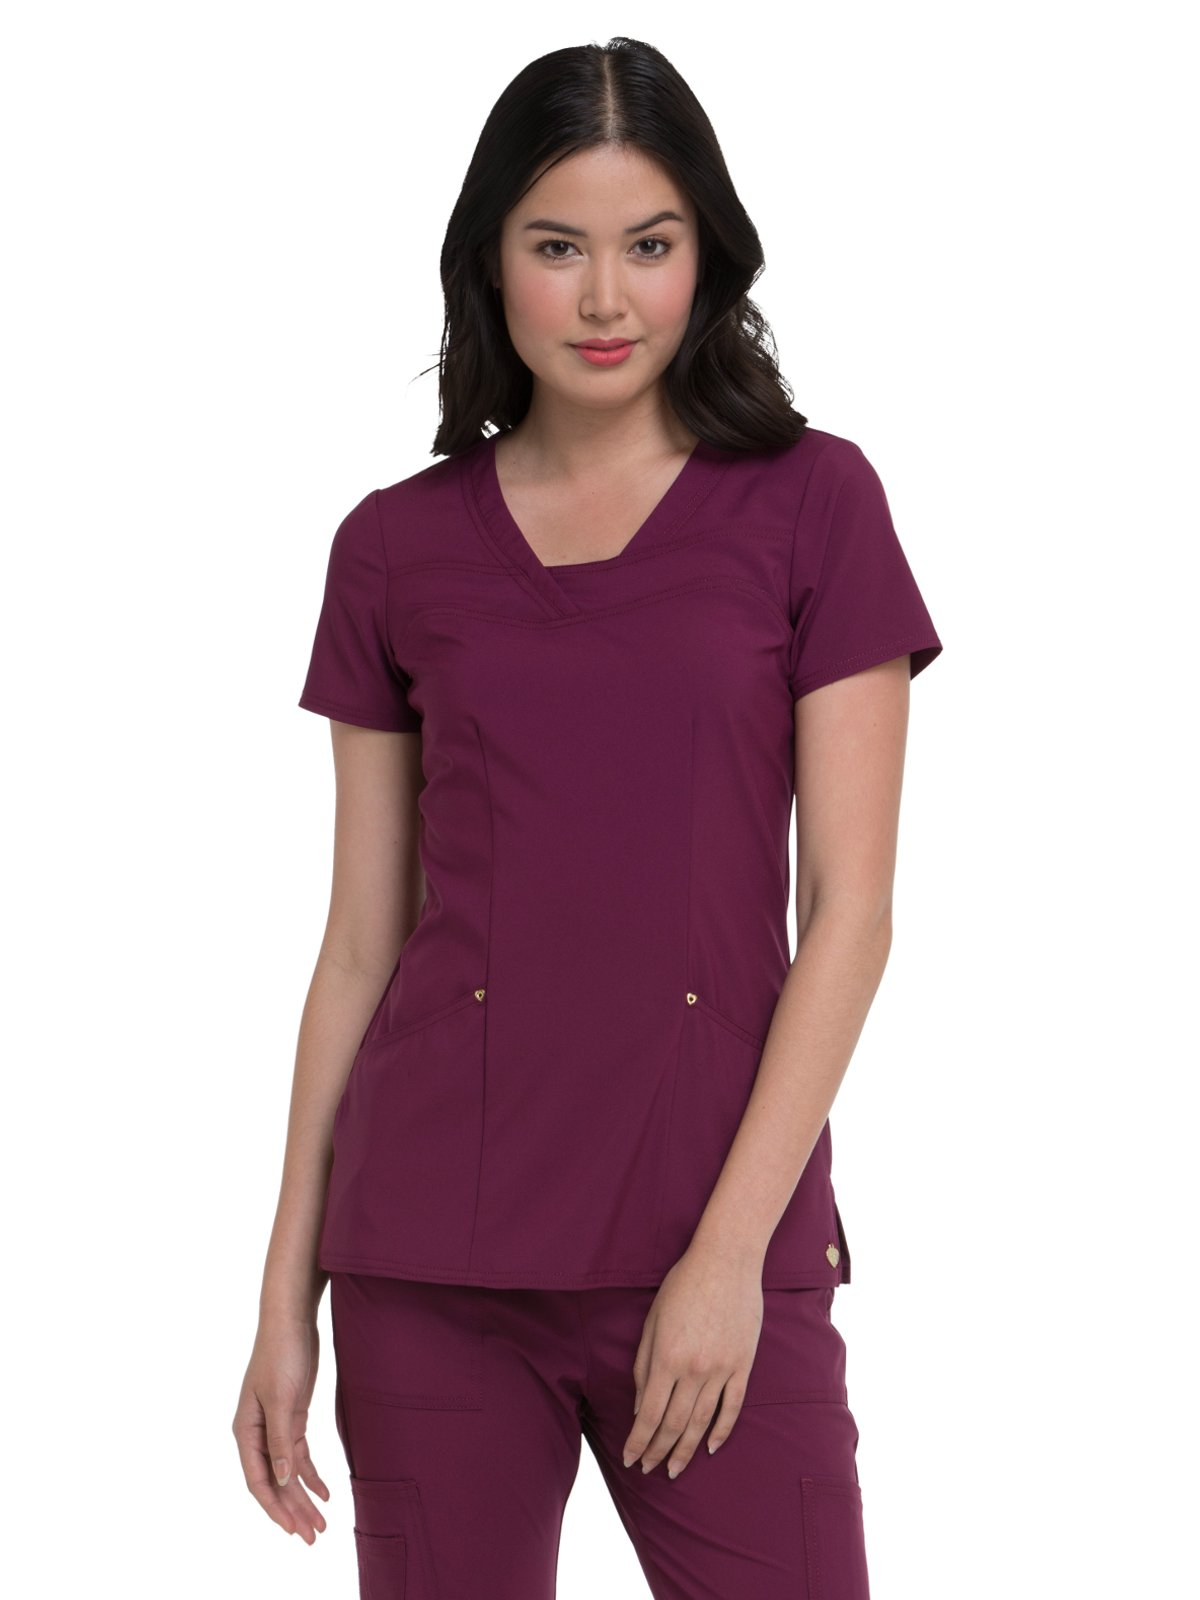 HeartSoul Love Always by Women's V-Neck Solid Scrub Top Small Wine